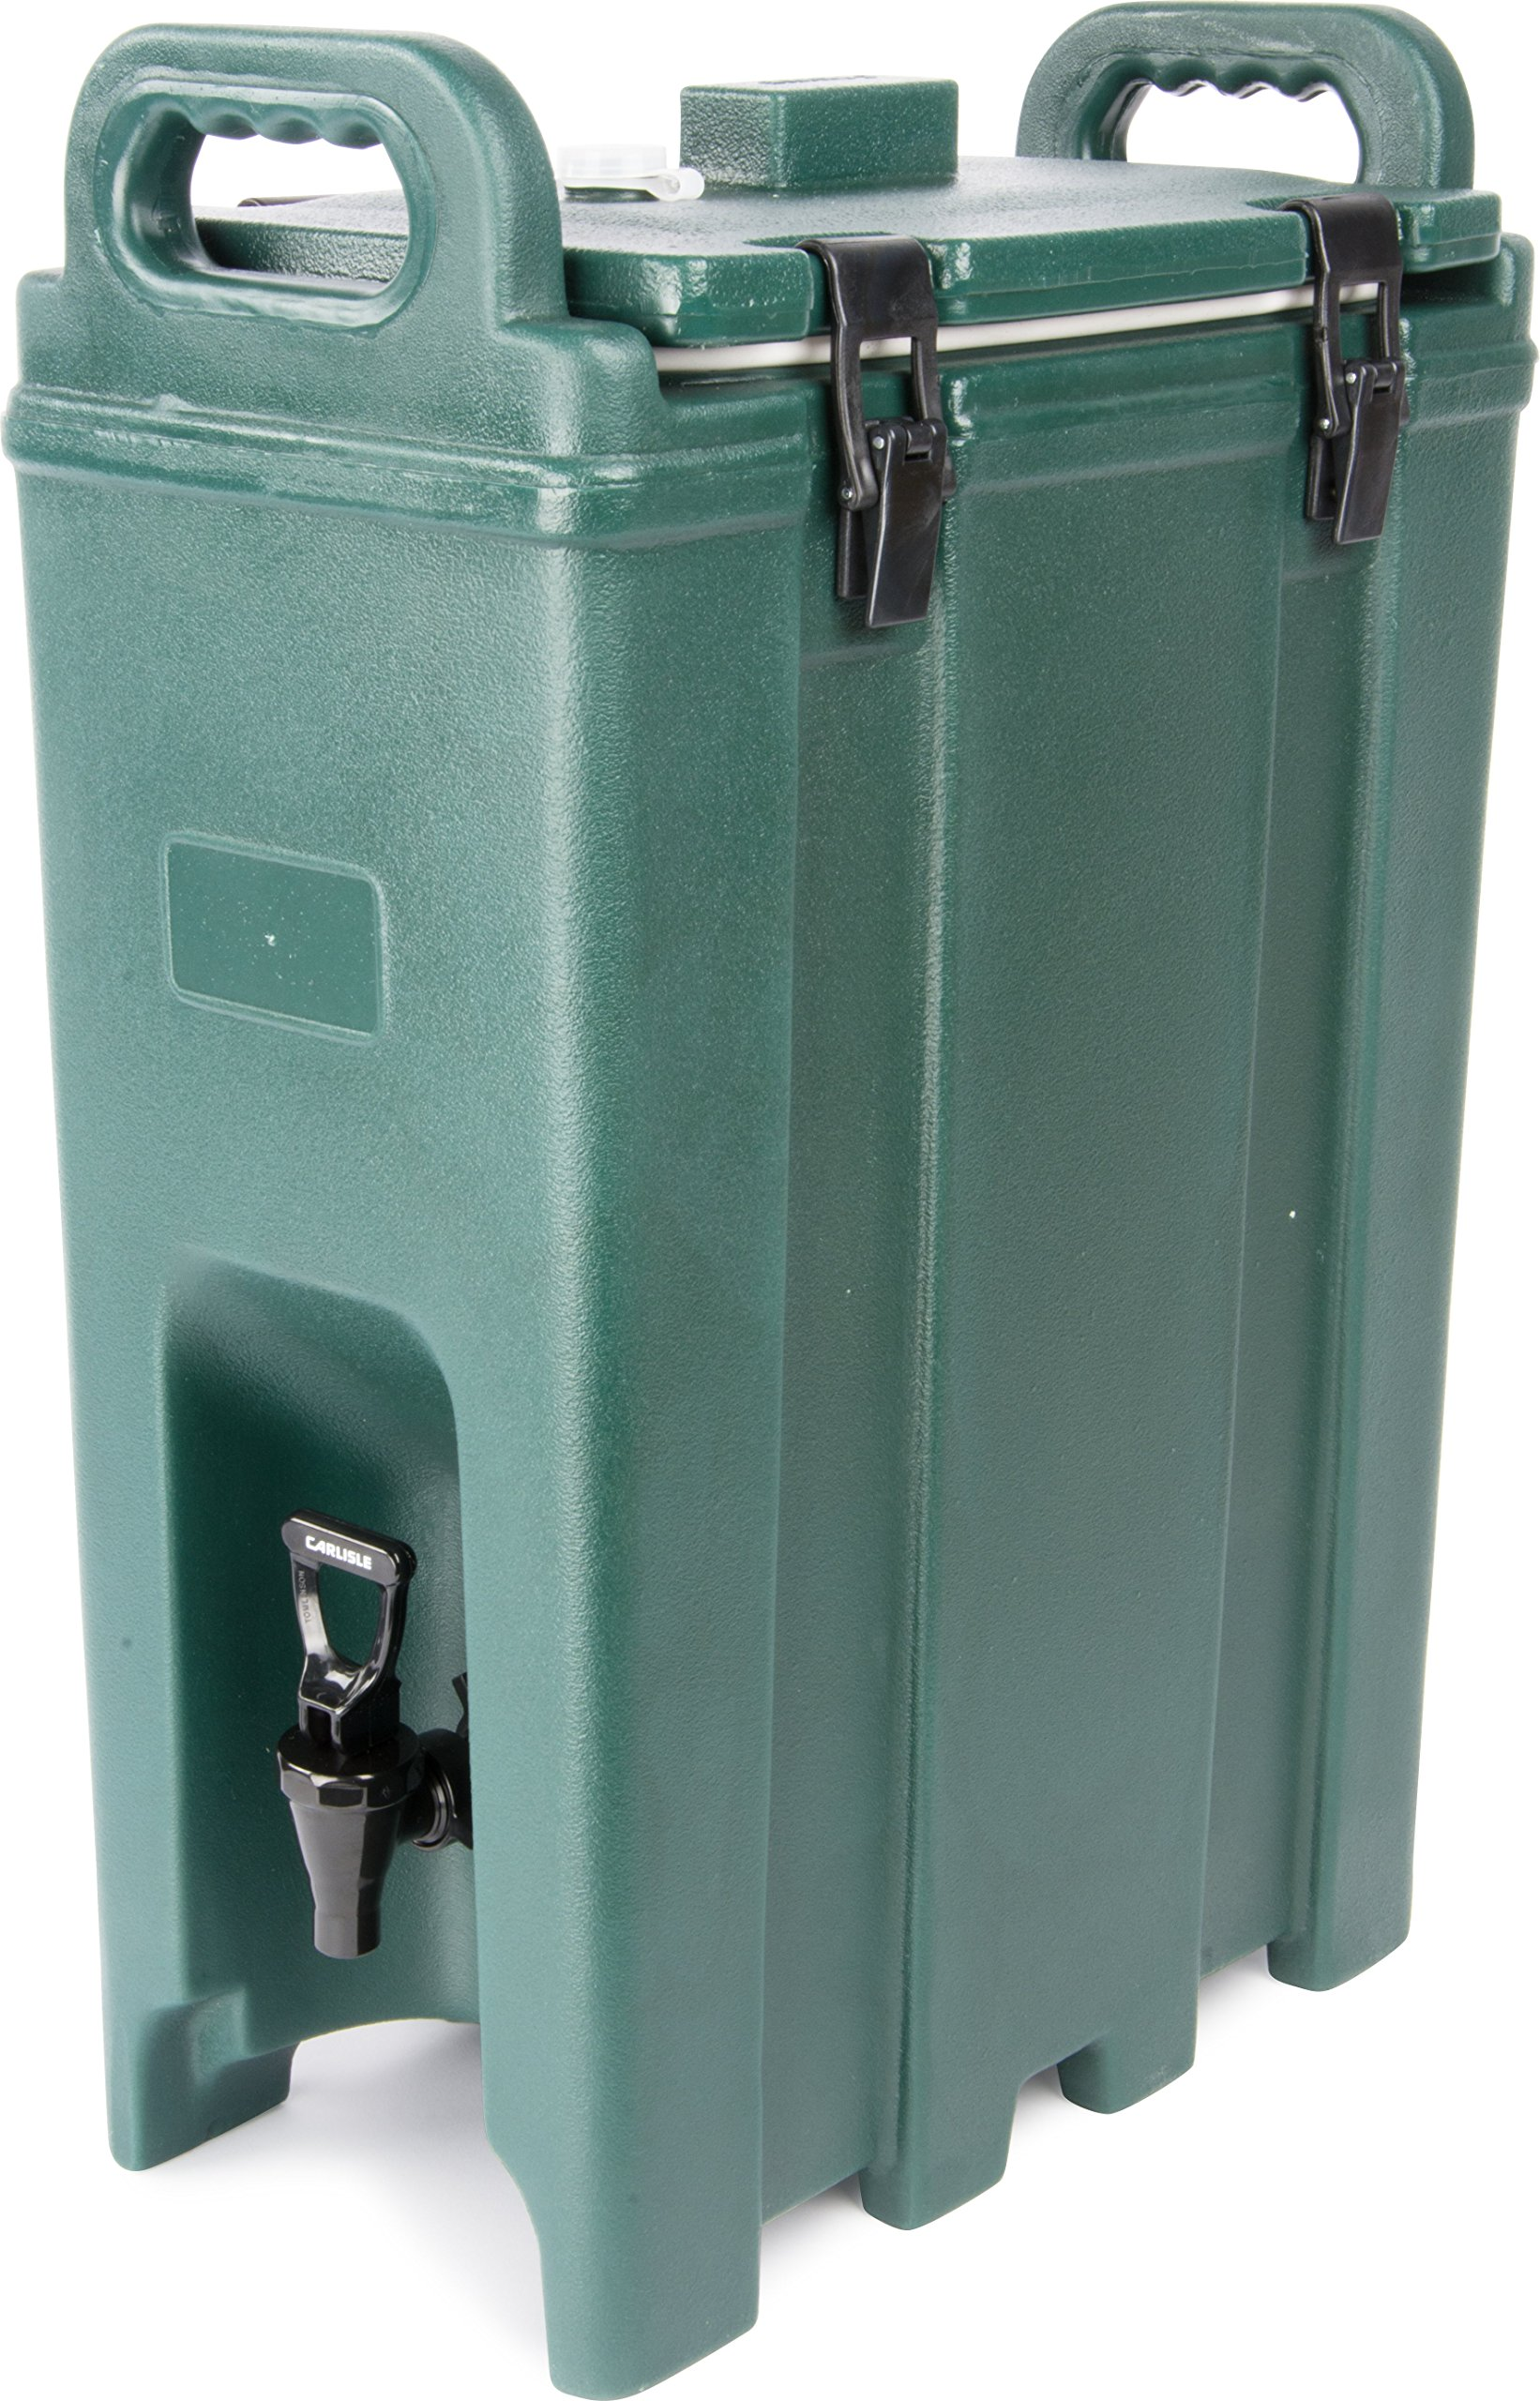 Carlisle LD500N08 Cateraide Polyethylene Insulated Beverage Server, 5 gal. Capacity, 16-3/8'' L x 9'' W x 24.20'' H, Forest Green